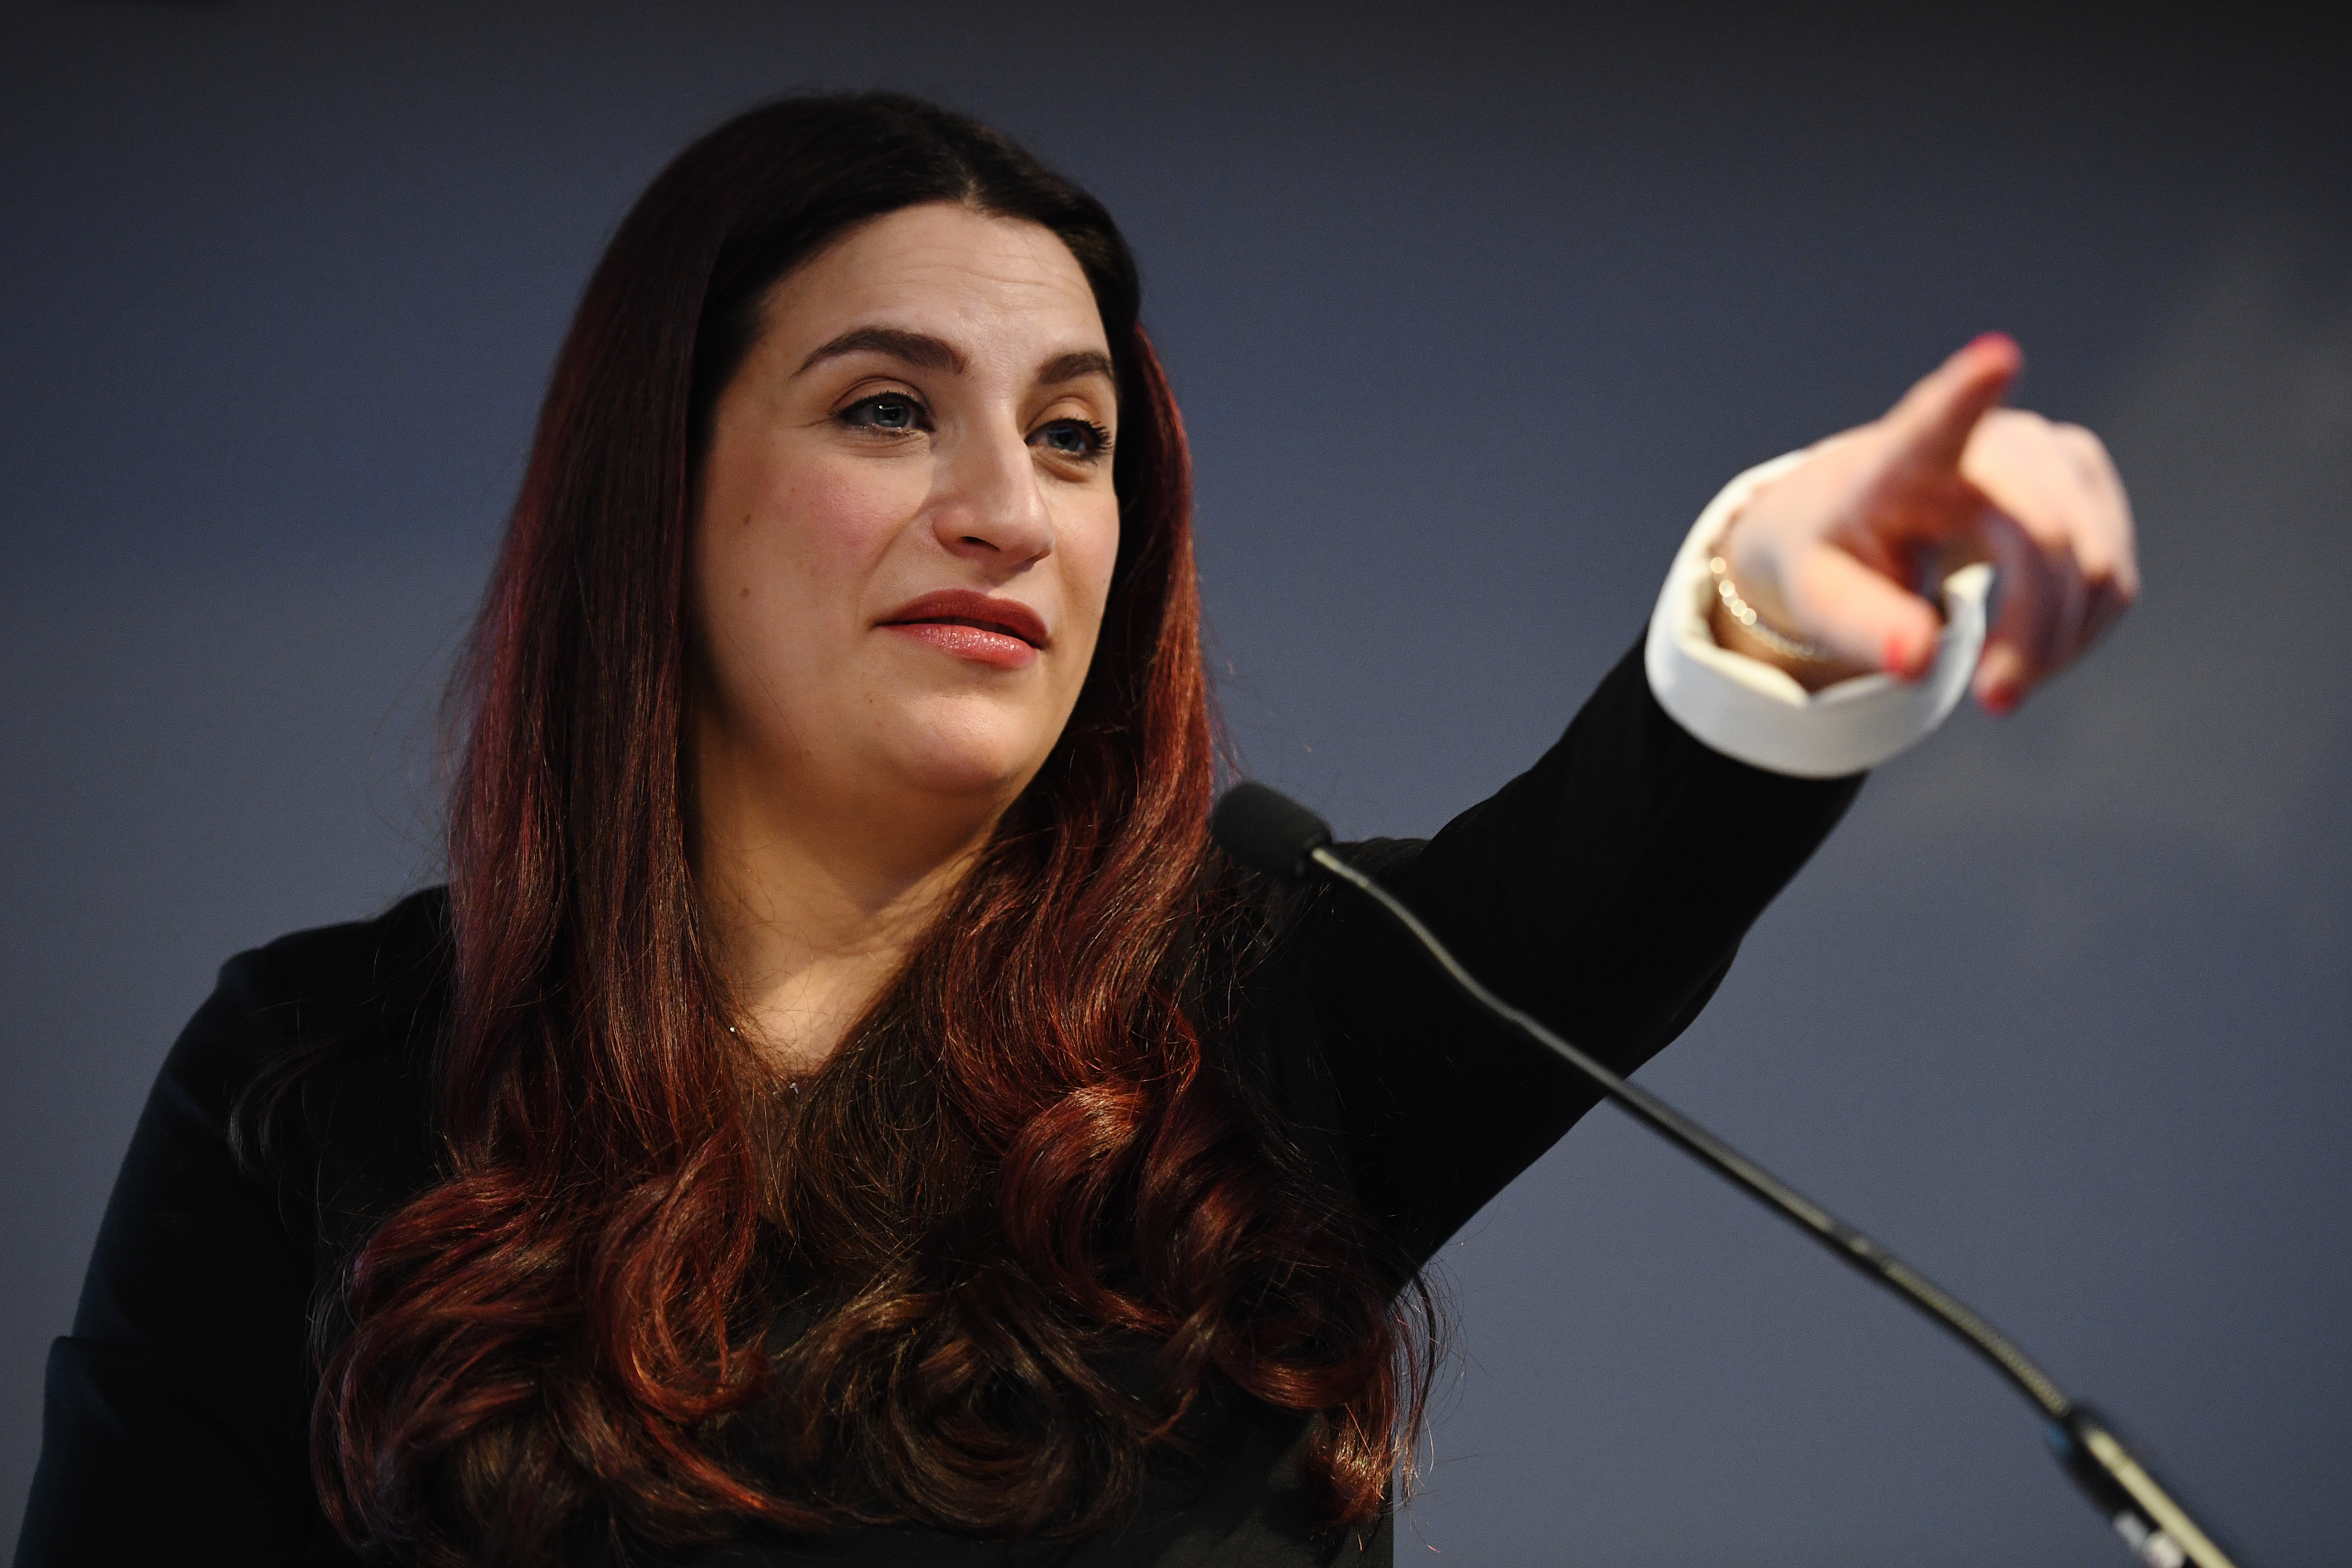 LONDON, ENGLAND - FEBRUARY 18: Labour MP Luciana Berger announces her resignation from the Labour Party at a press conference on February 18, 2019 in London, England. Chuka Umunna MP along with Chris Leslie, Luciana Berger, Gavin Shuker, Angela Smith, Anne Coffey and Mike Gapes have announced they have resigned from the Labour Party and will sit in the House of Commons as The Independent Group of Members of Parliament. (Photo by Leon Neal/Getty Images)